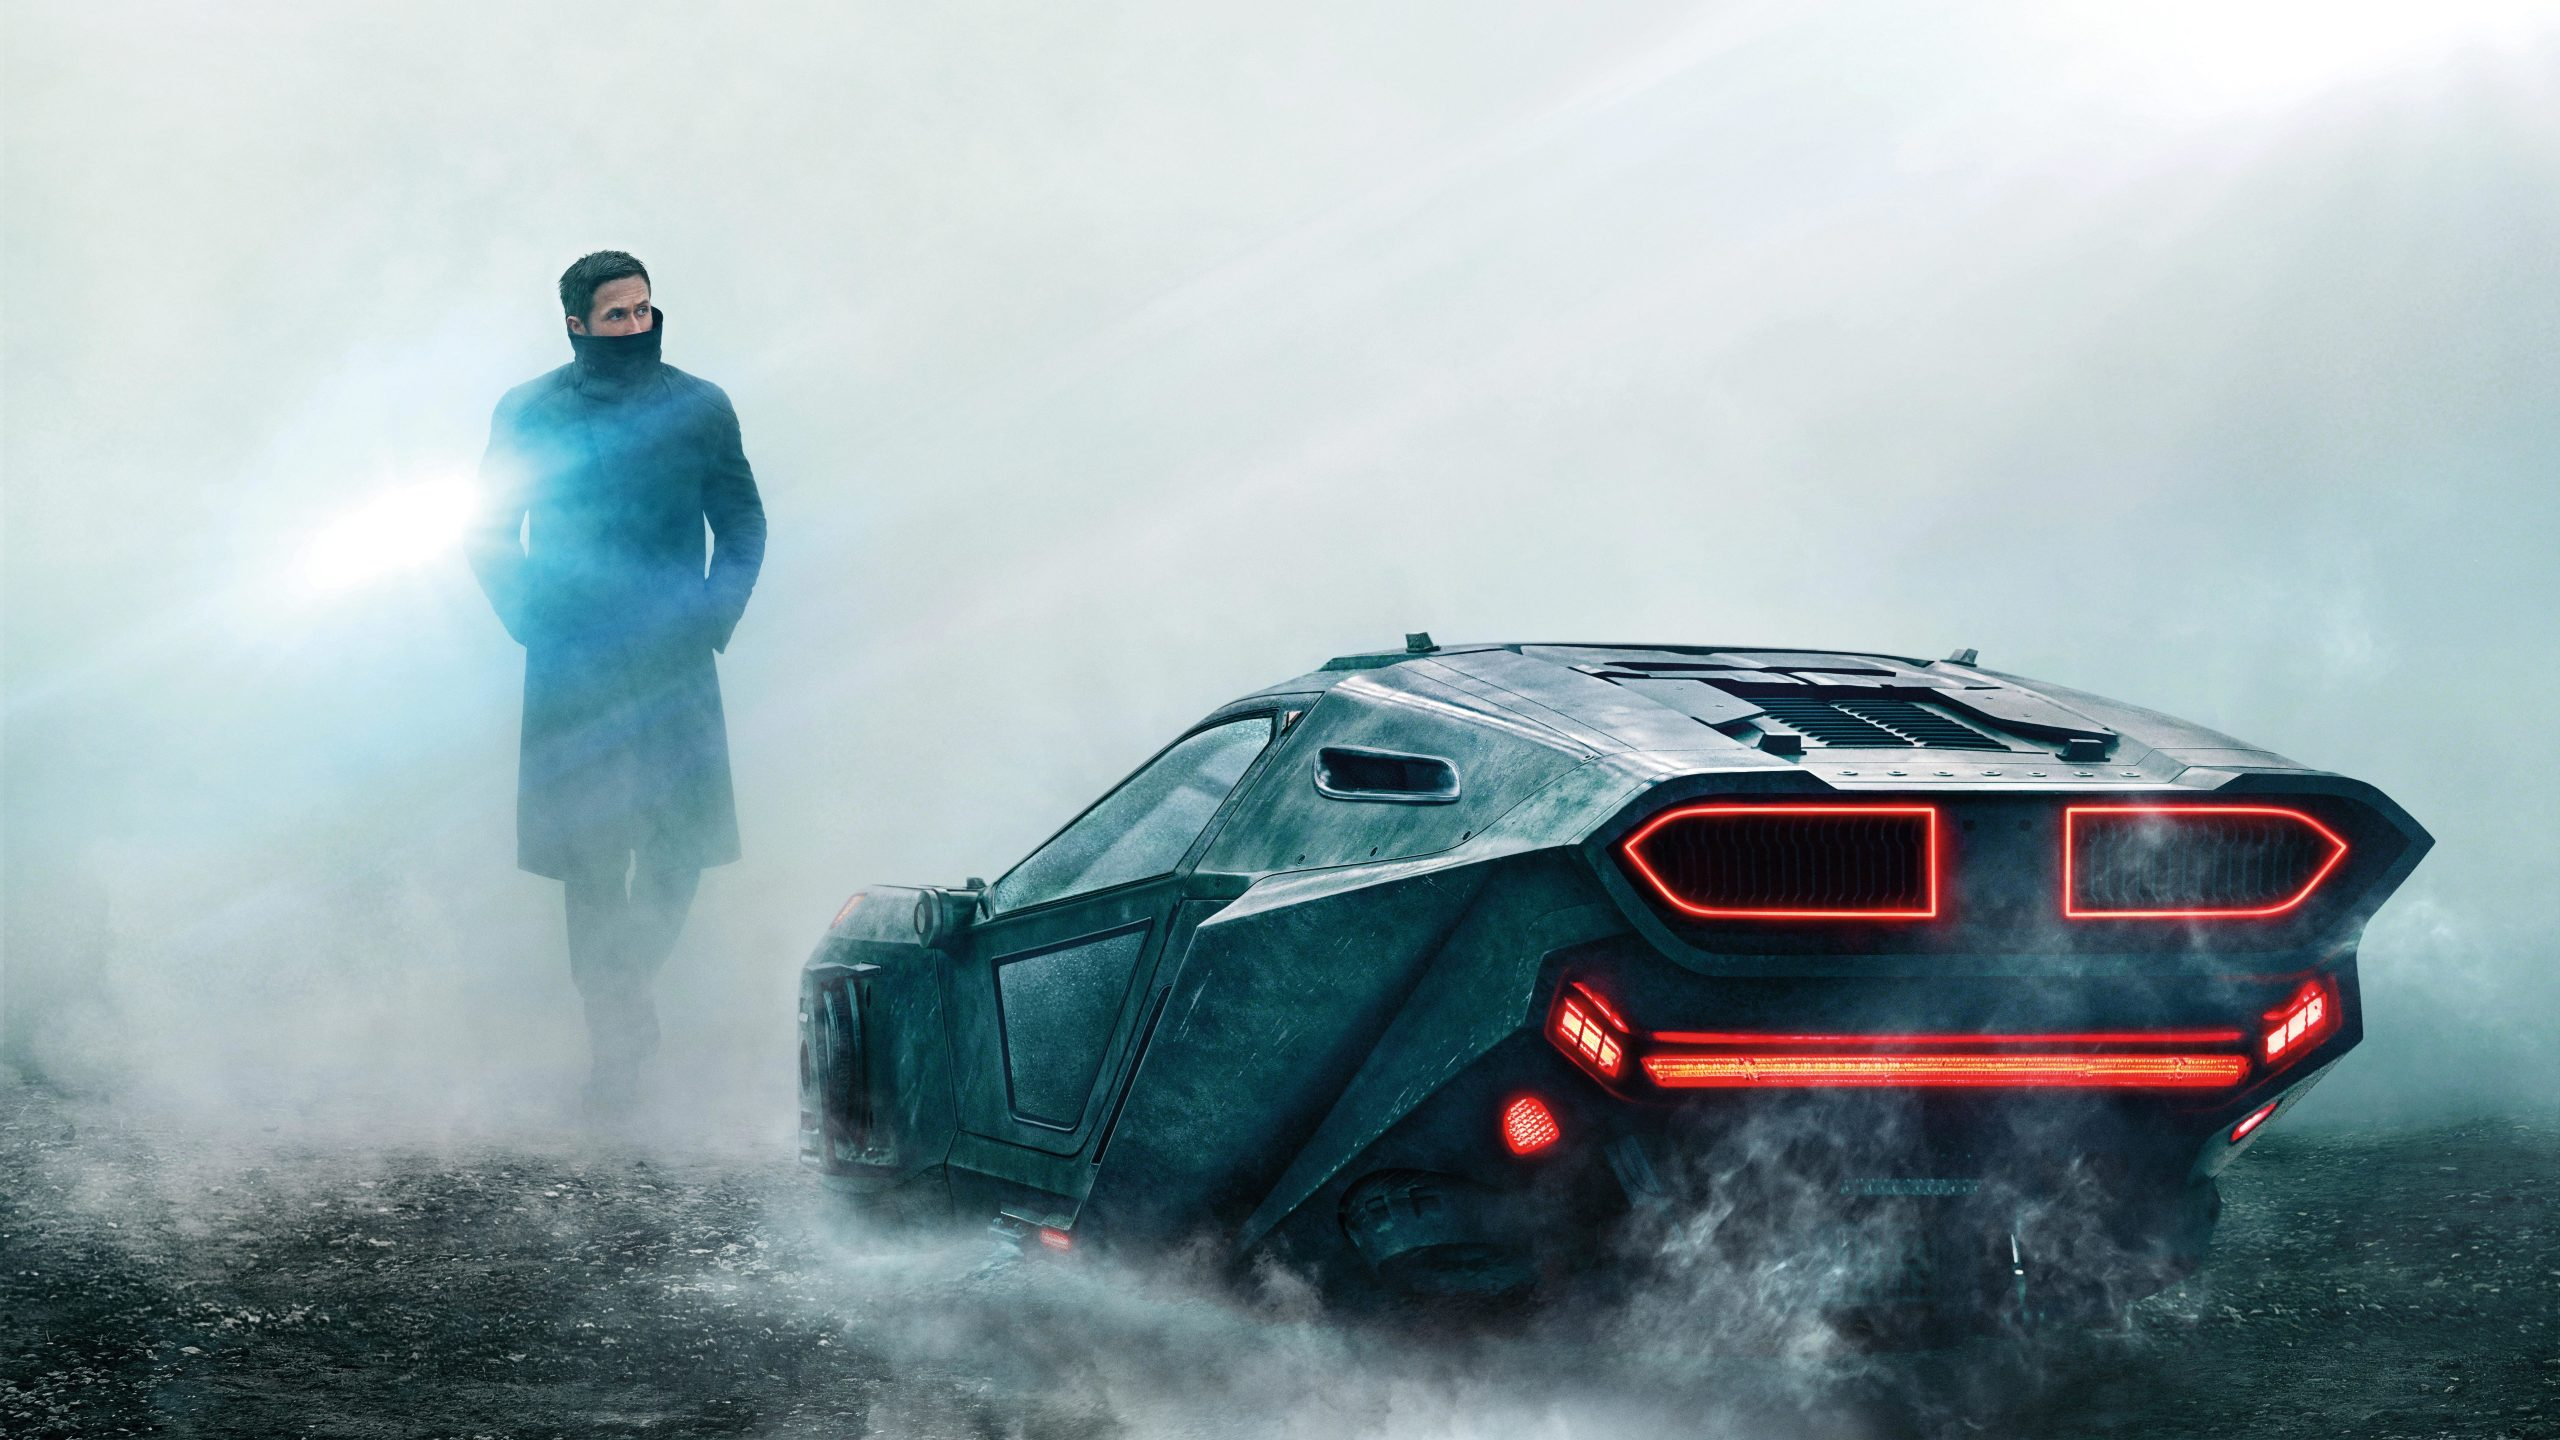 2560x1440 Blade Runner 2049 Still 1440p Resolution Wallpaper Hd Movies 4k Wallpapers Images Photos And Background